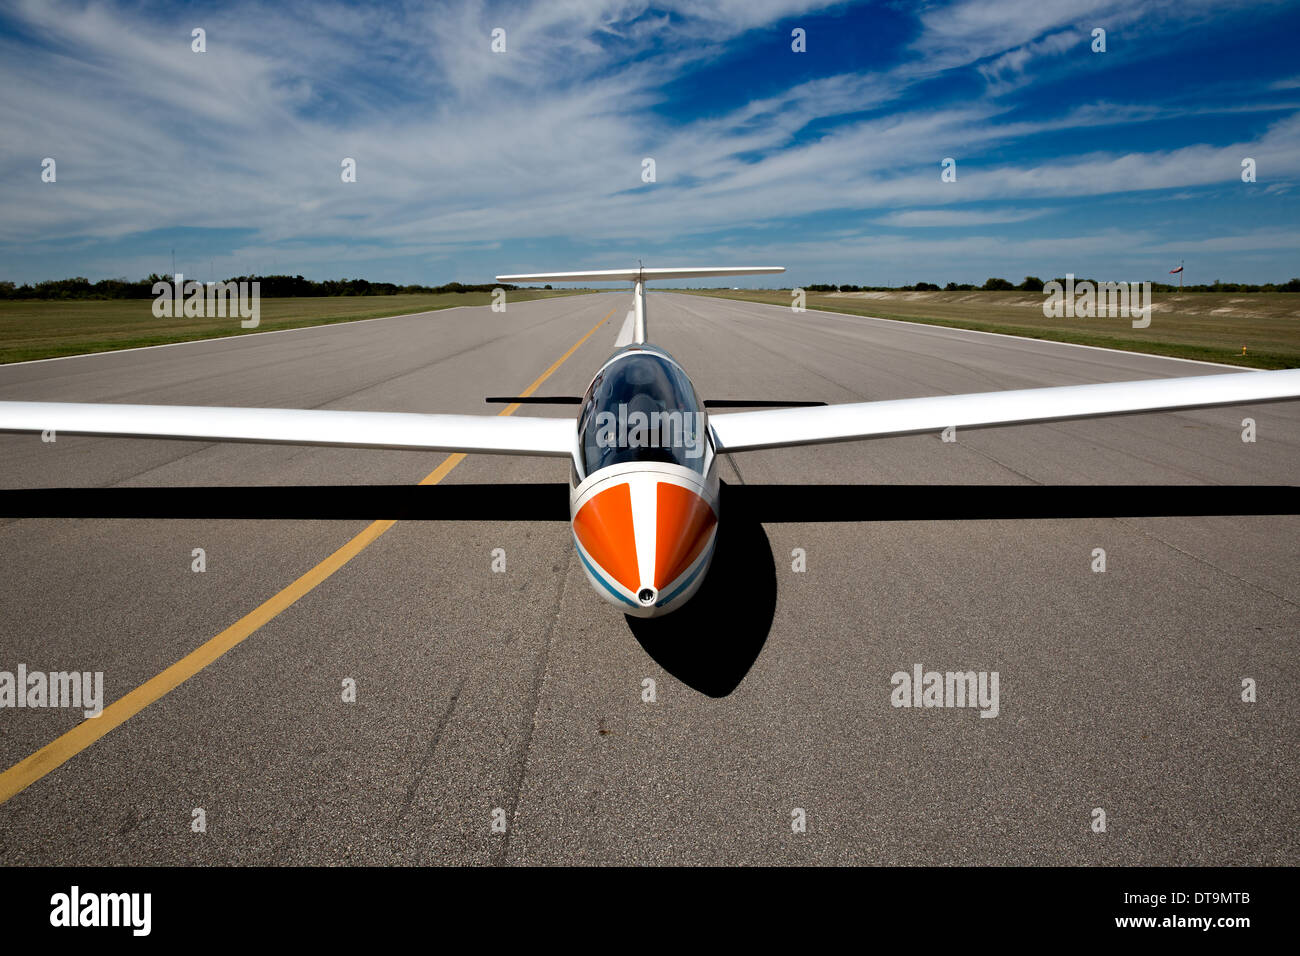 Front view of a Sailplane on the runway - Stock Image